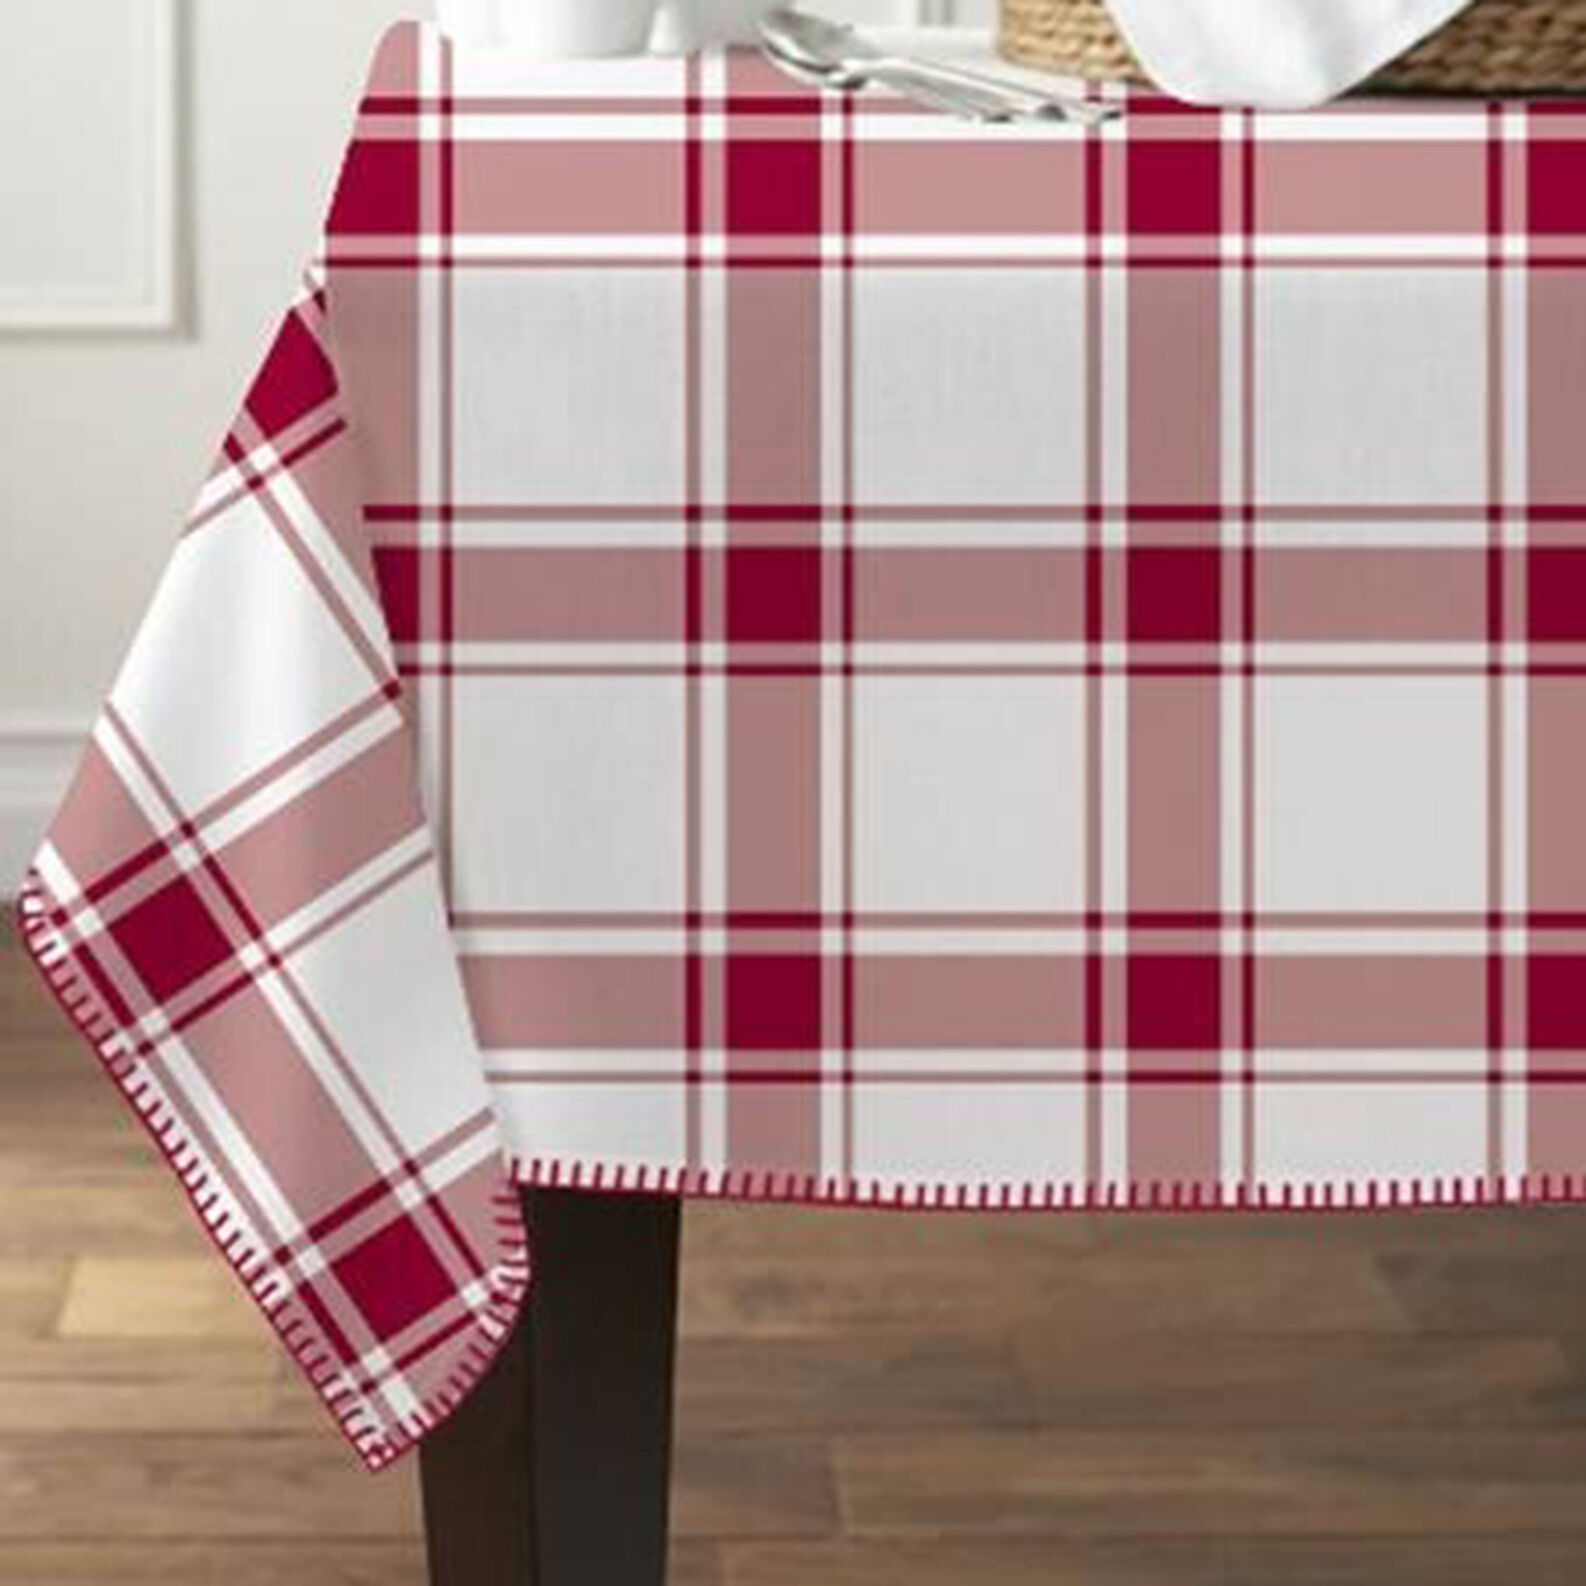 100% cotton tablecloth with check motif